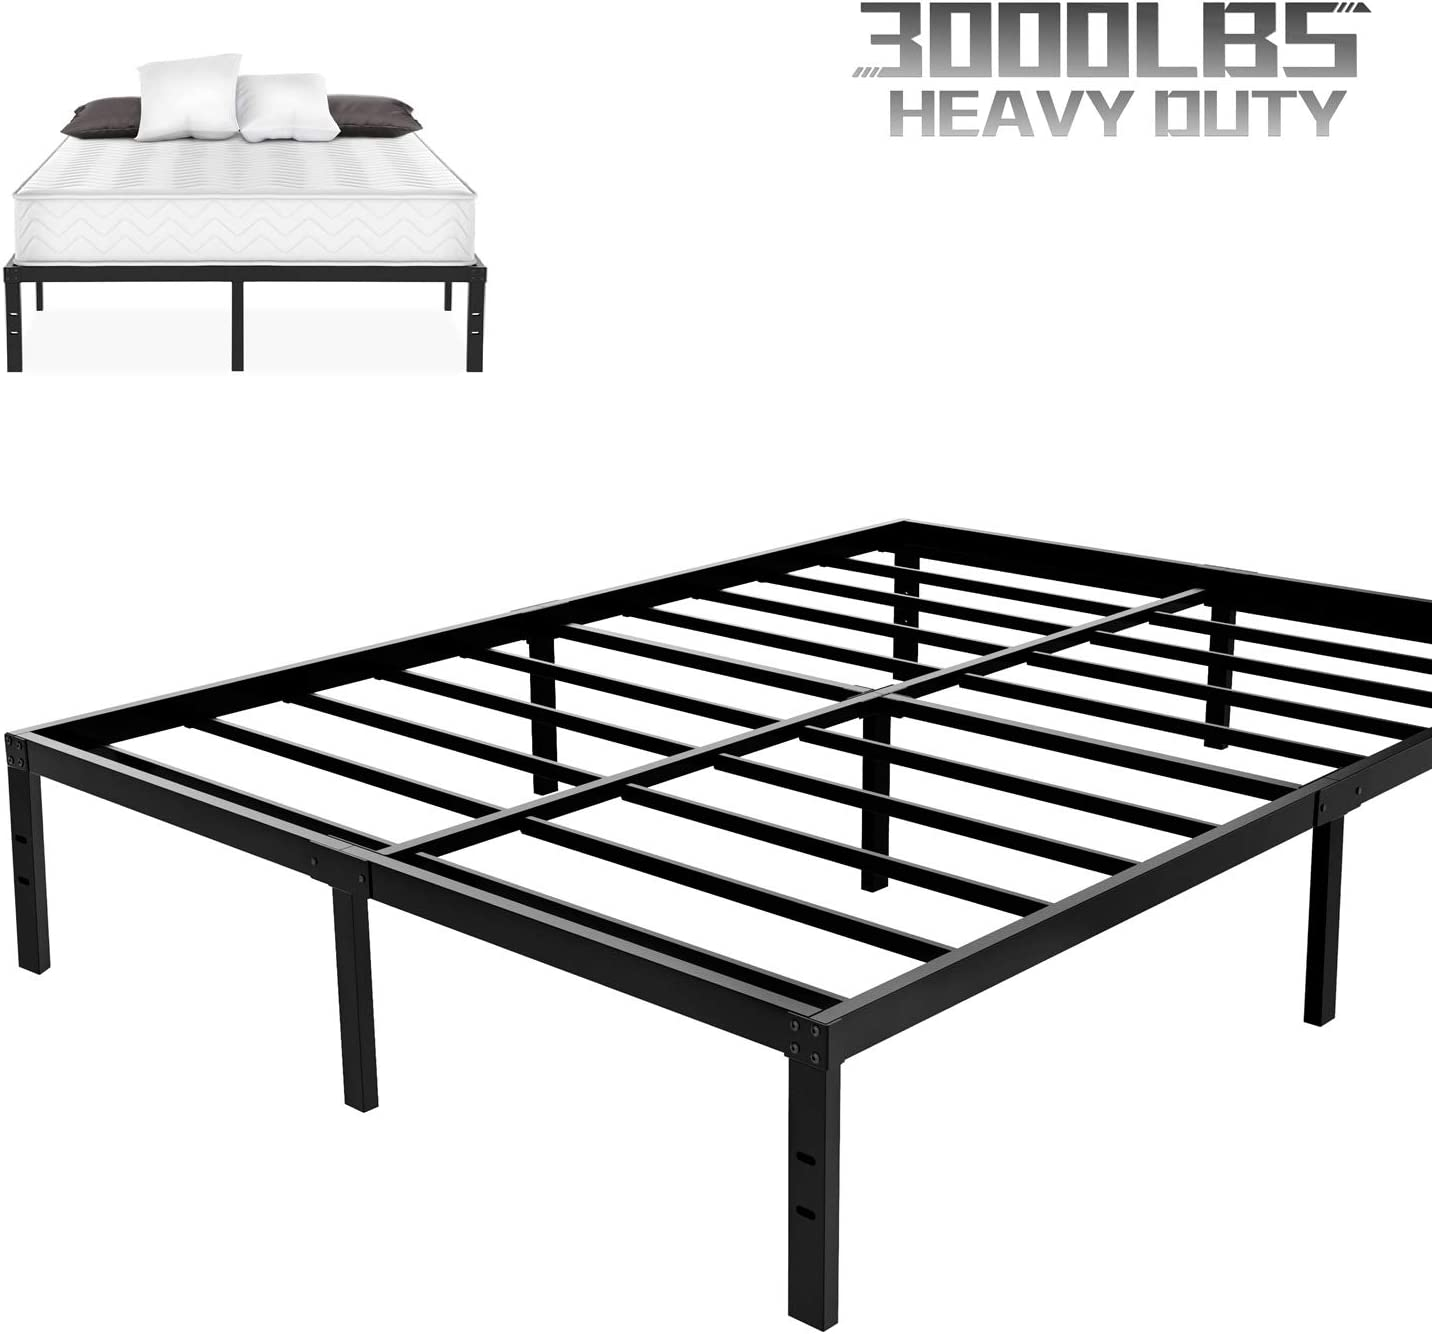 NOAH MEGATRON Heavy Duty King Platform Bed Frame, Slatted Bed Base 14 Inch Mattress Foundation Bed Frame,12 Inch Under-Bed Storage,No Box Spring Needed King